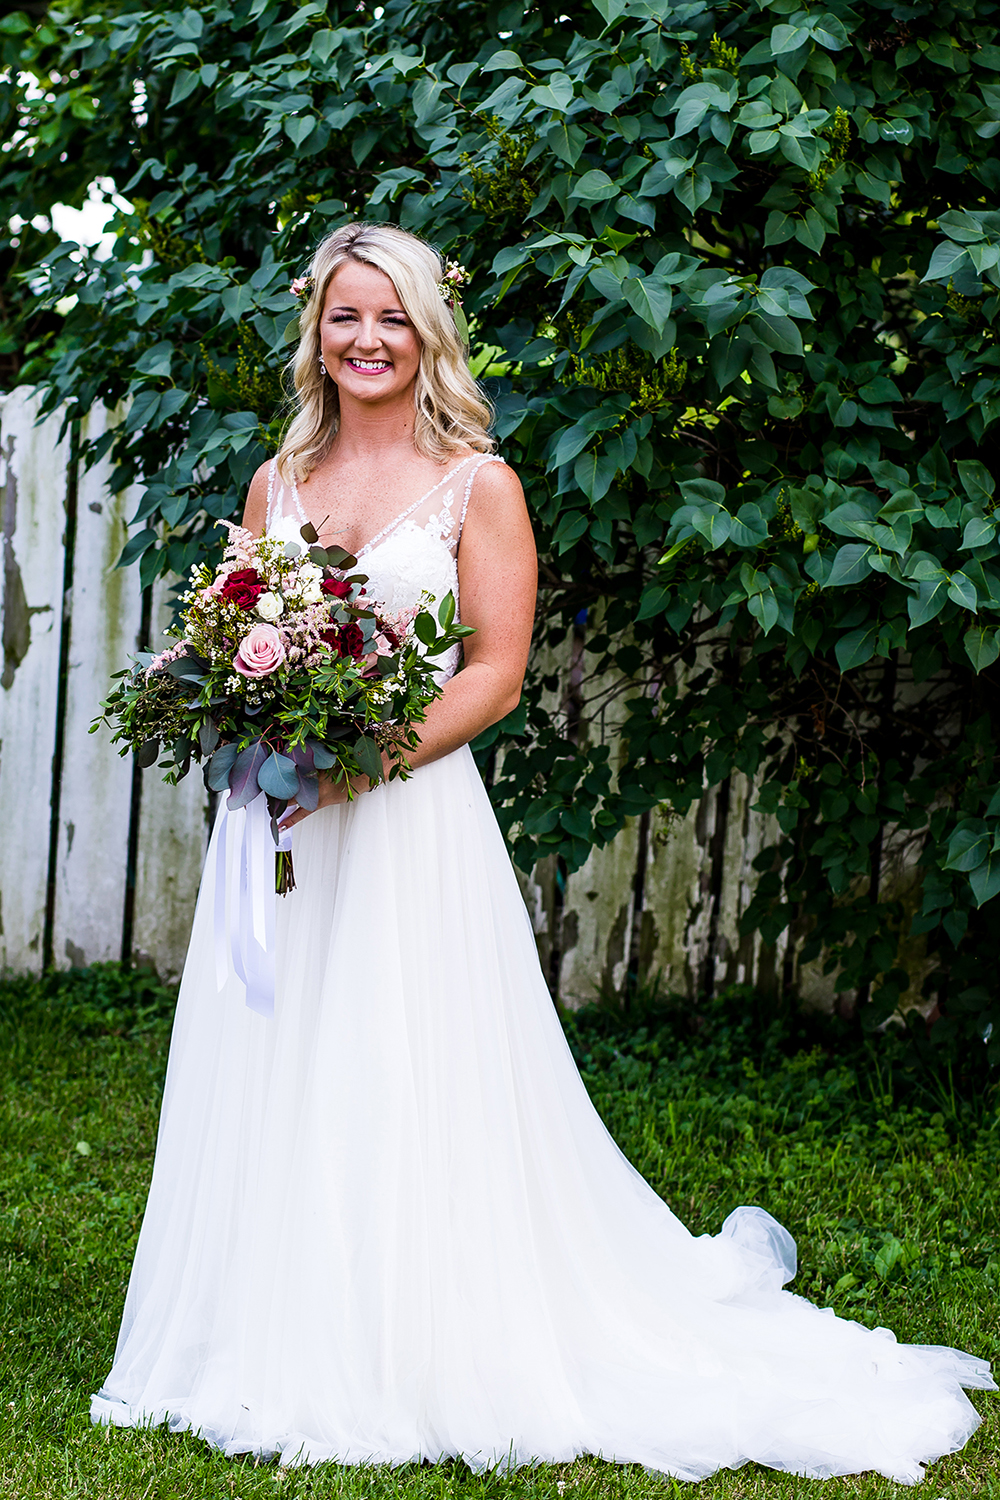 Bridal Portrait in Shelbyville, Indiana wedding photography